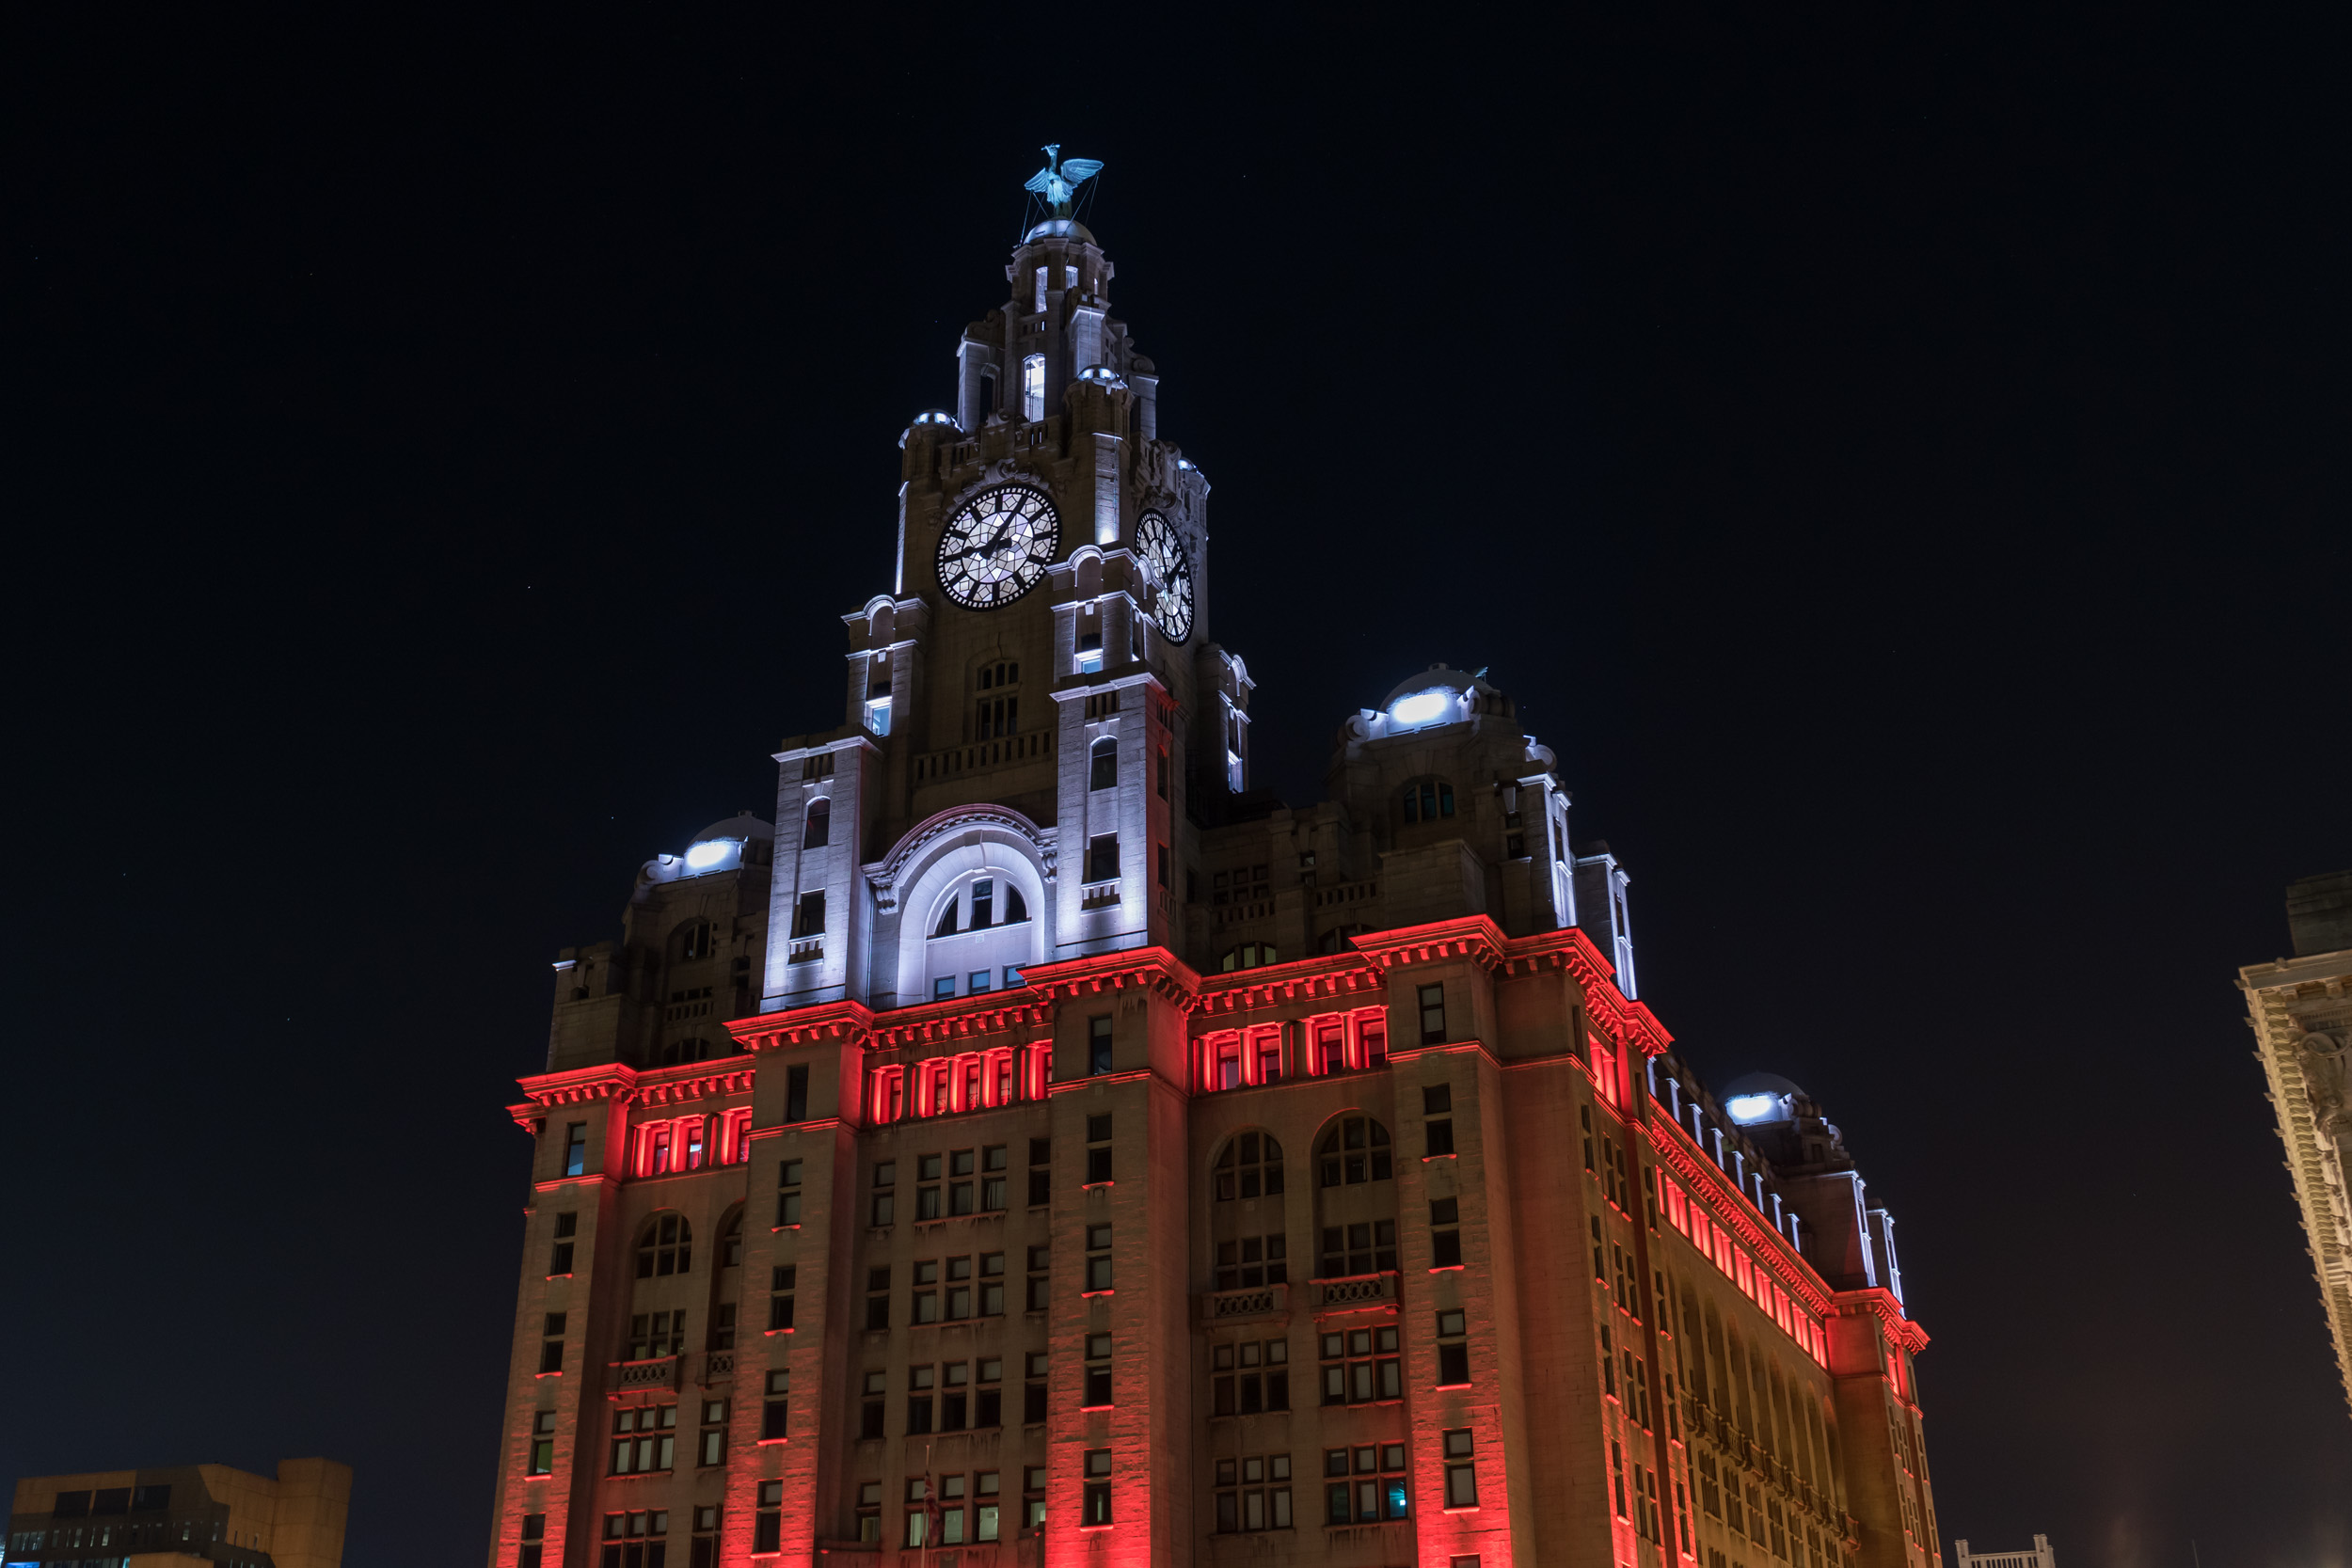 The Royal Liver Building launches new 'Christmas Show' light display